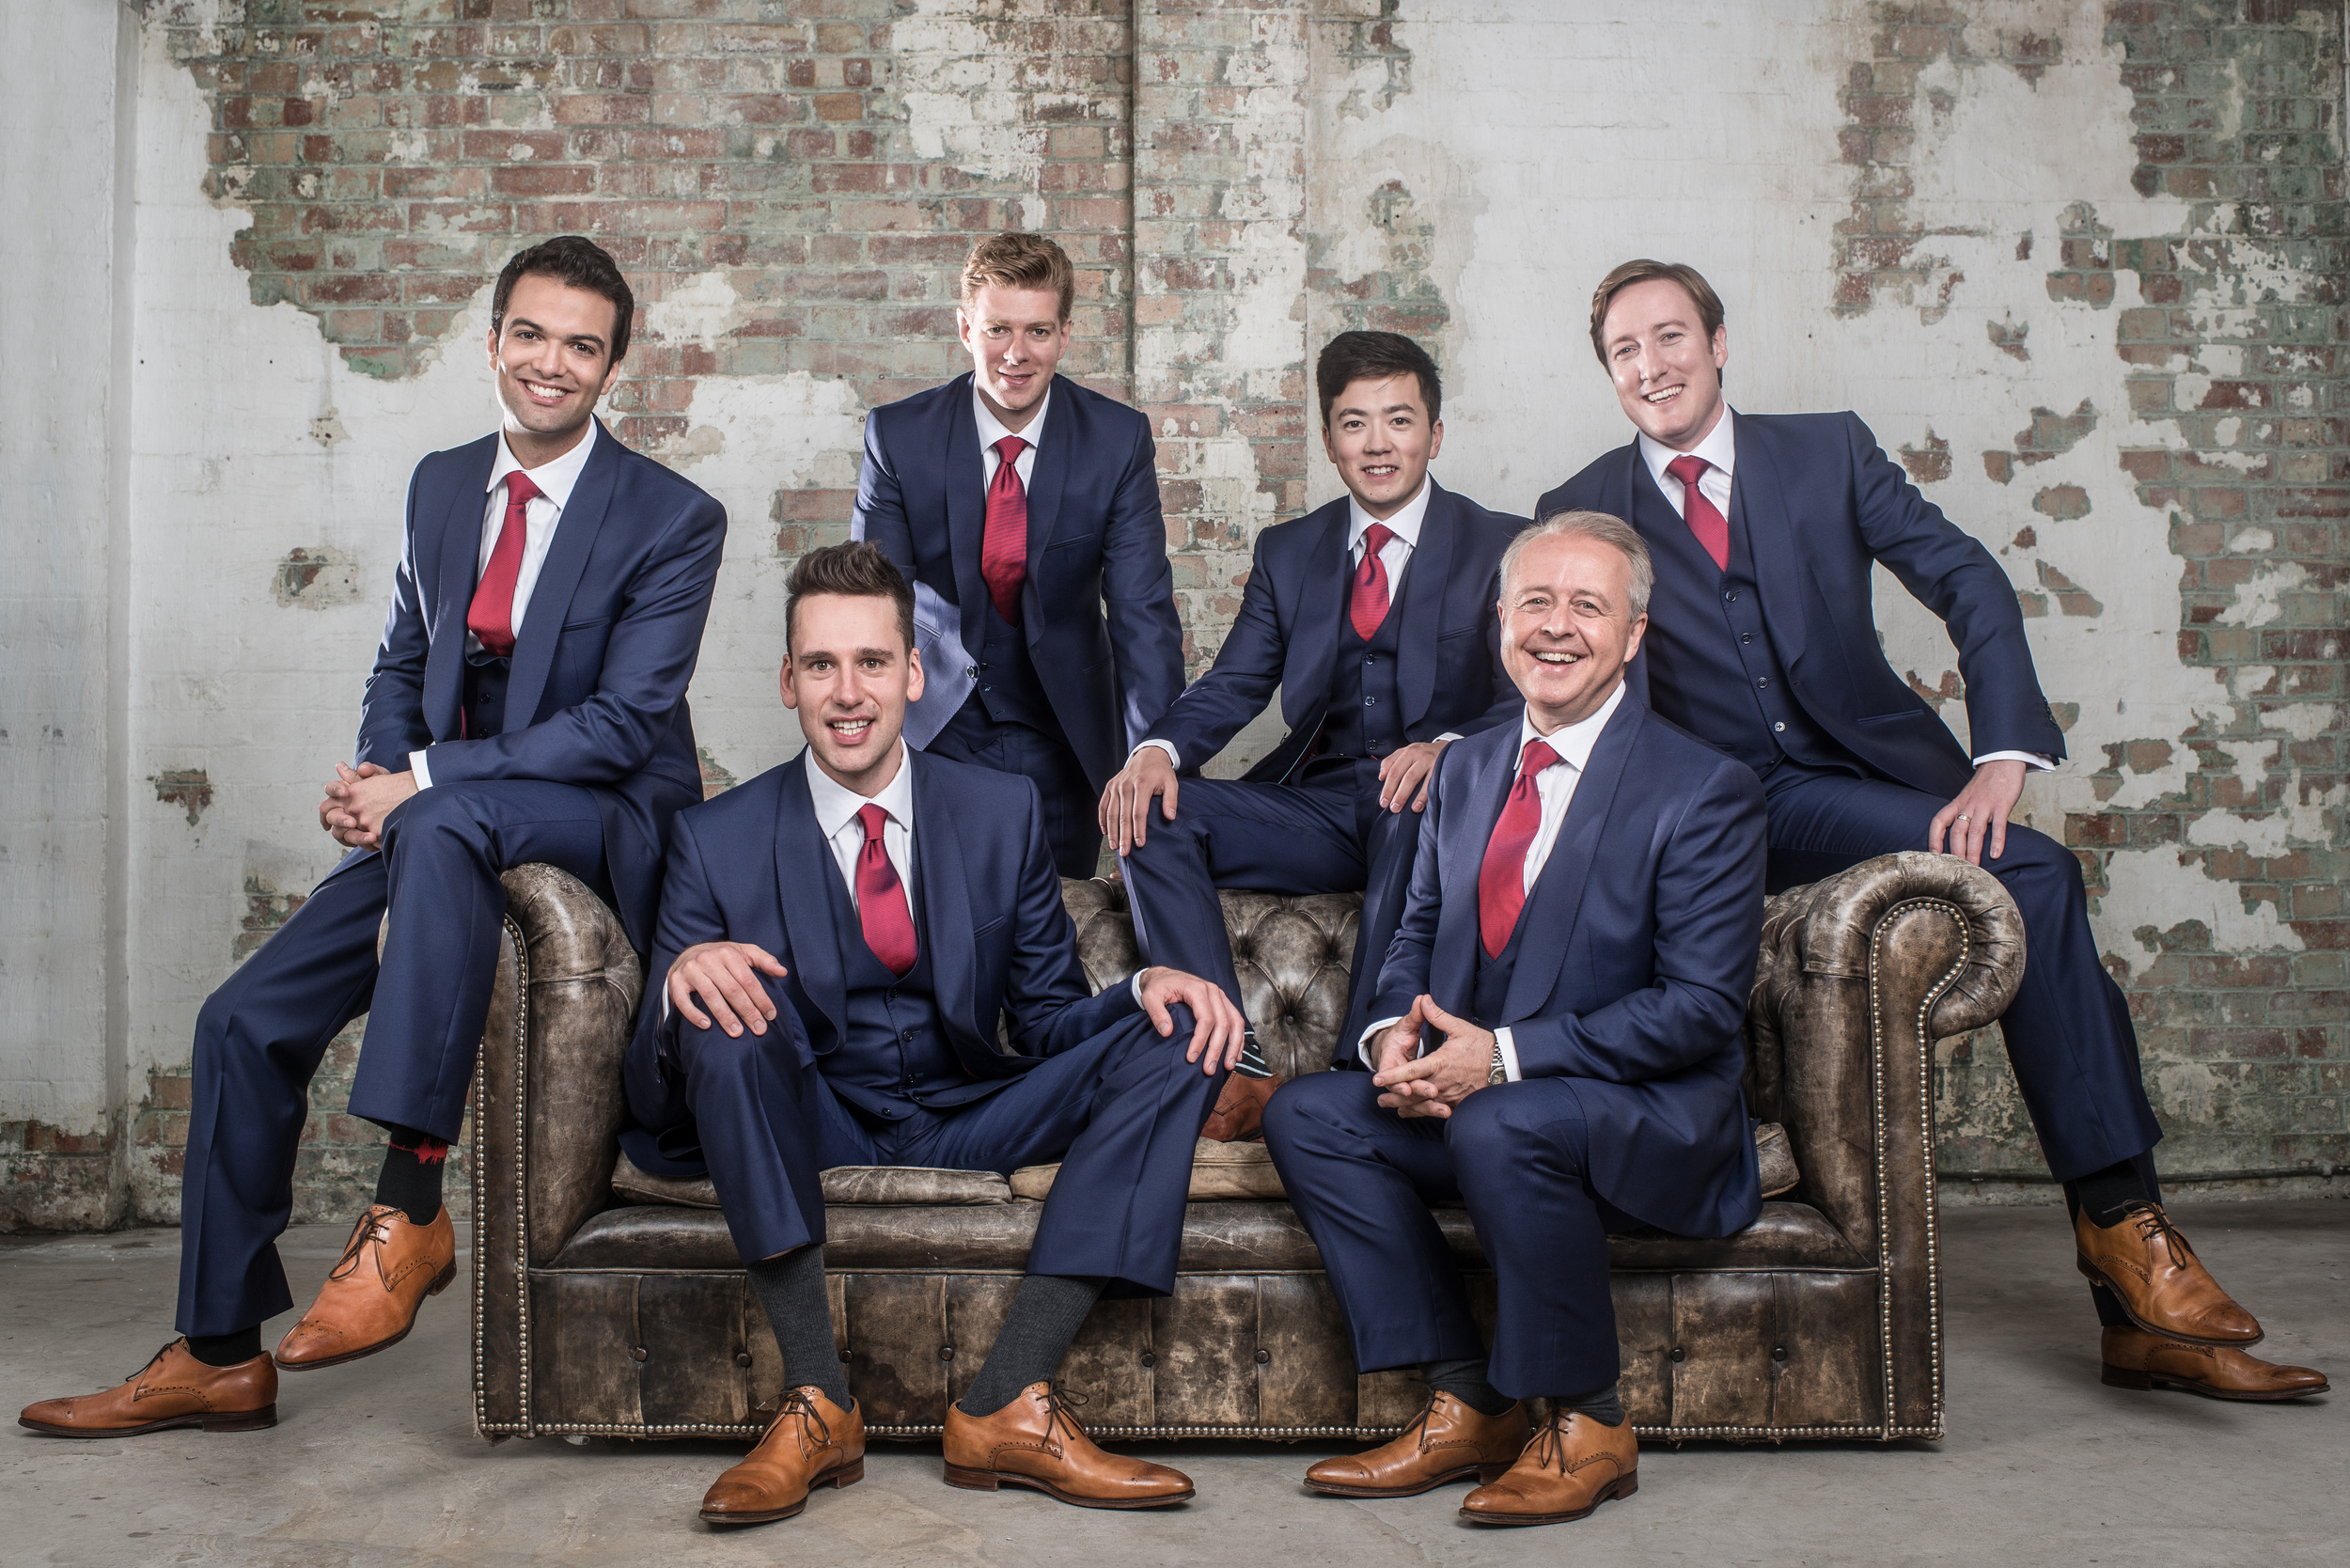 Acclaimed a capella group, The King's Singers